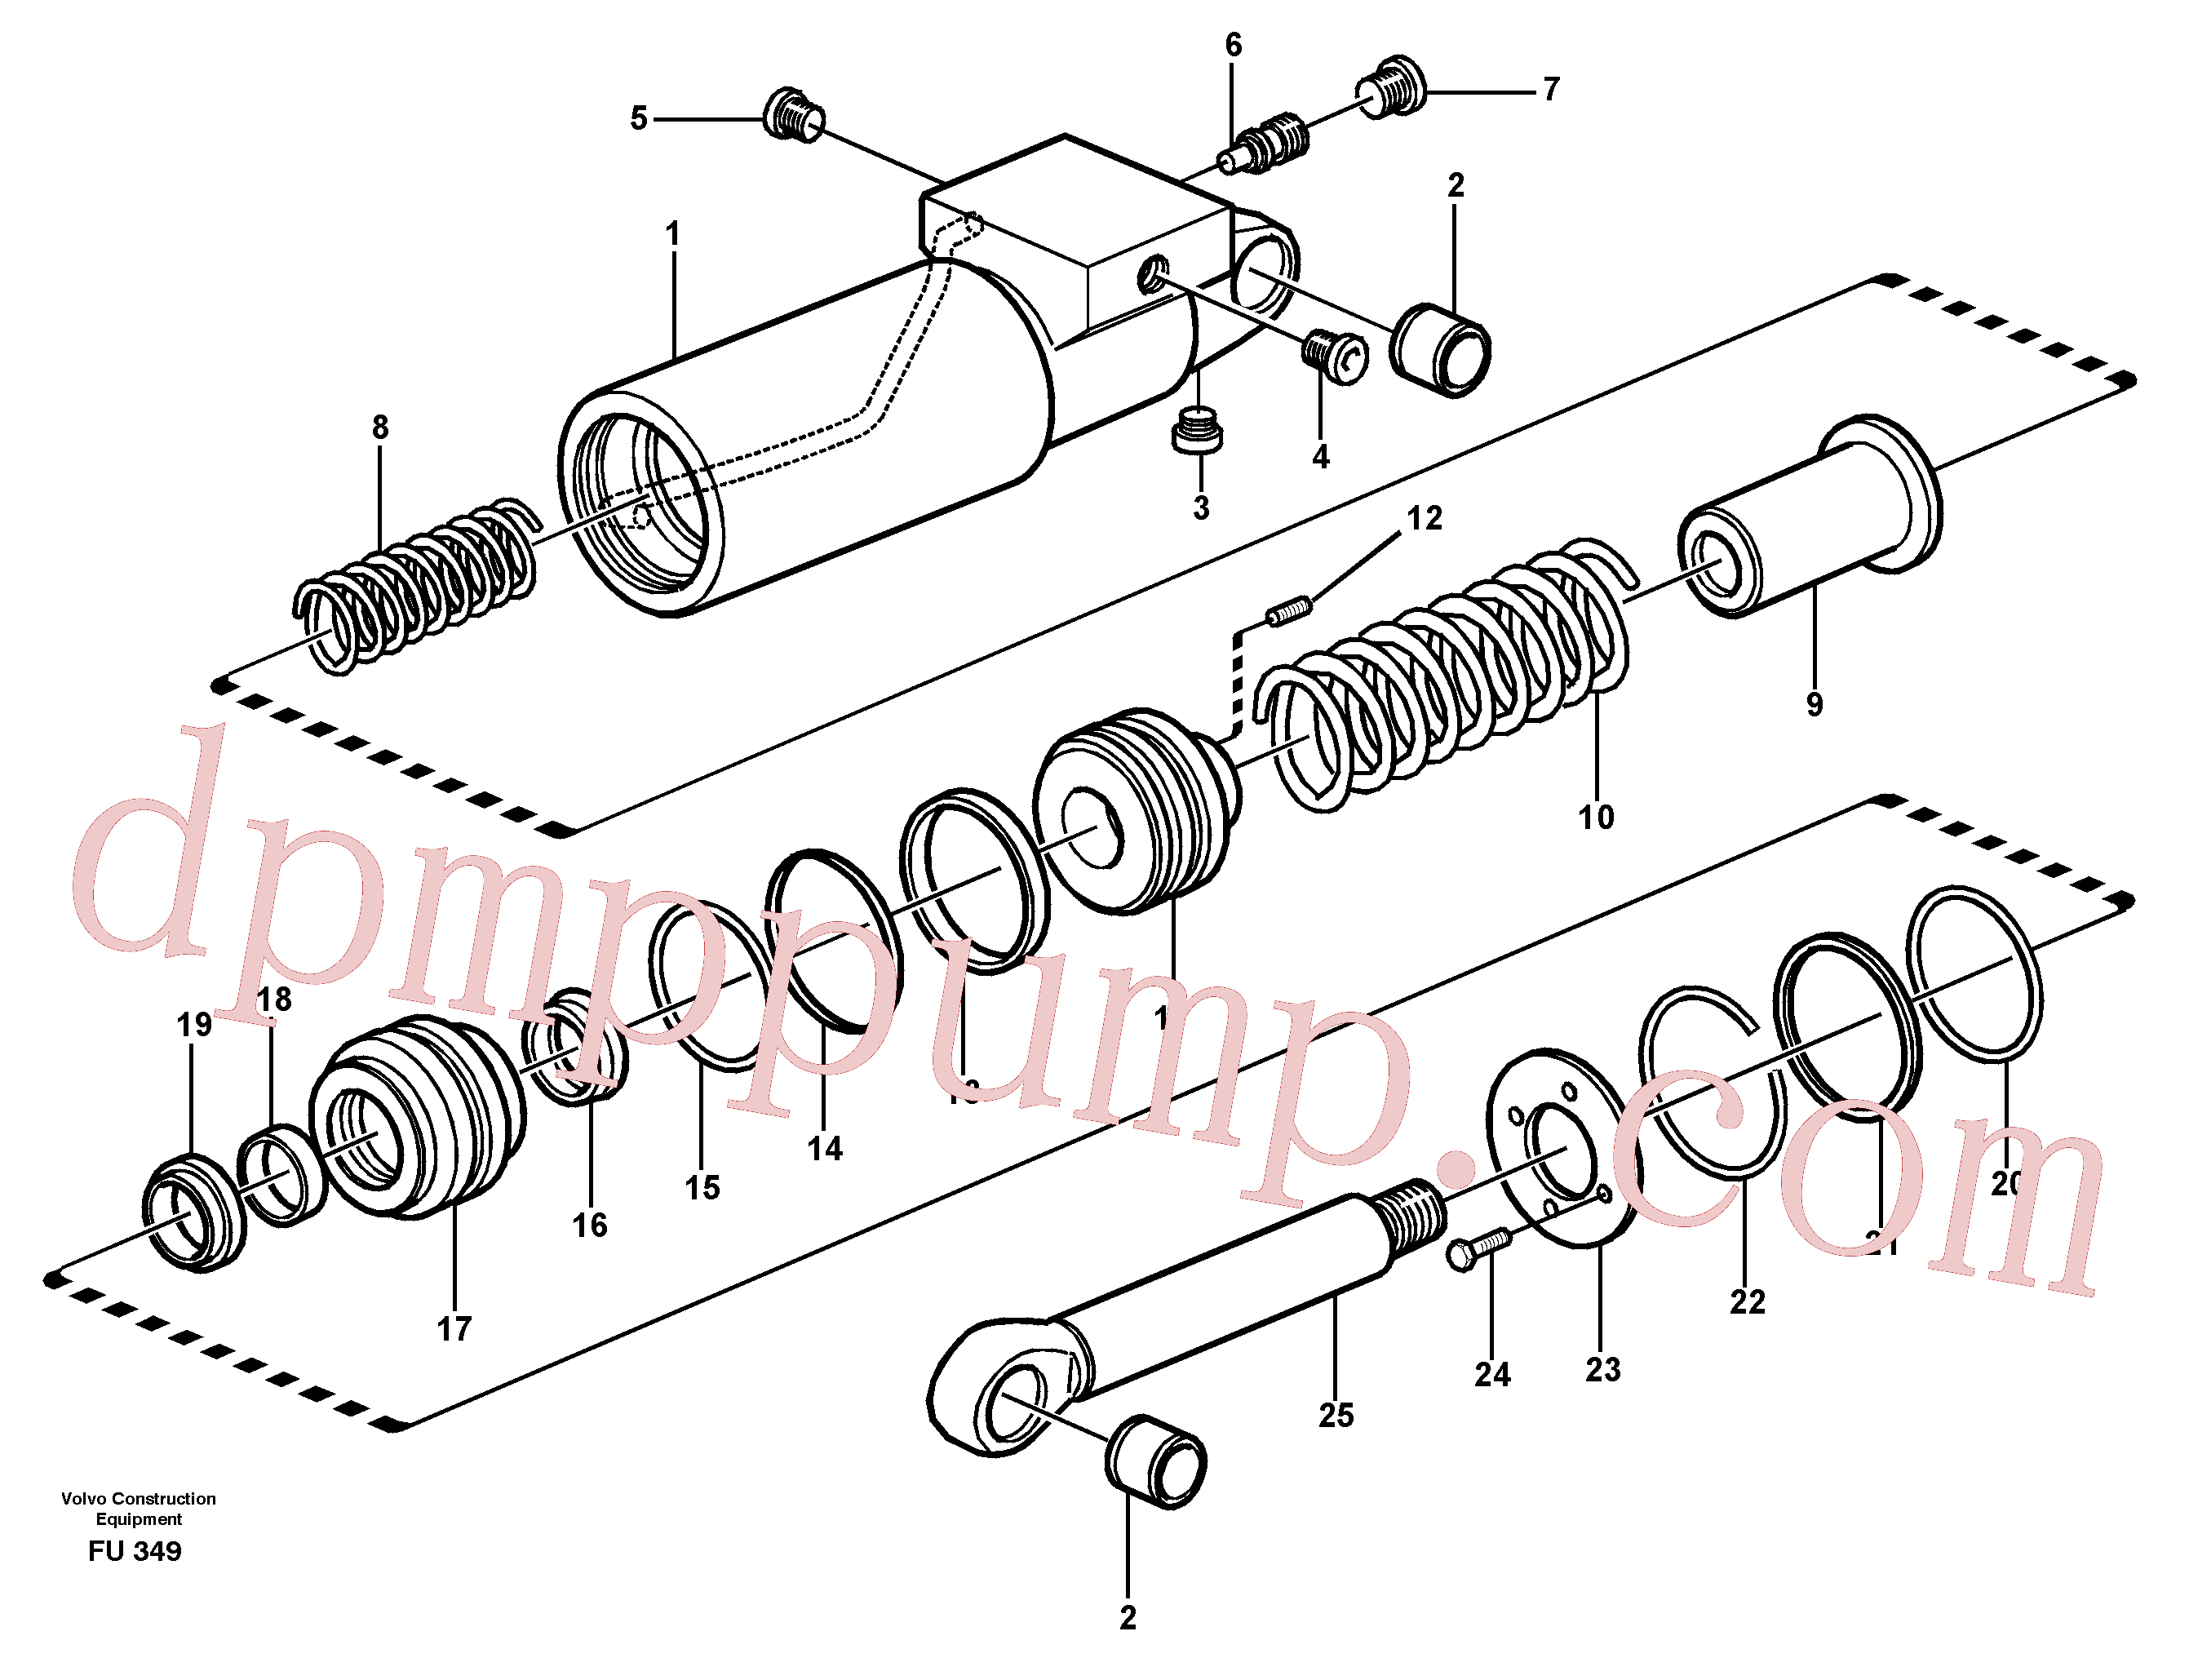 VOE11702311 for Volvo Hydraulic cylinder(FU349 assembly)